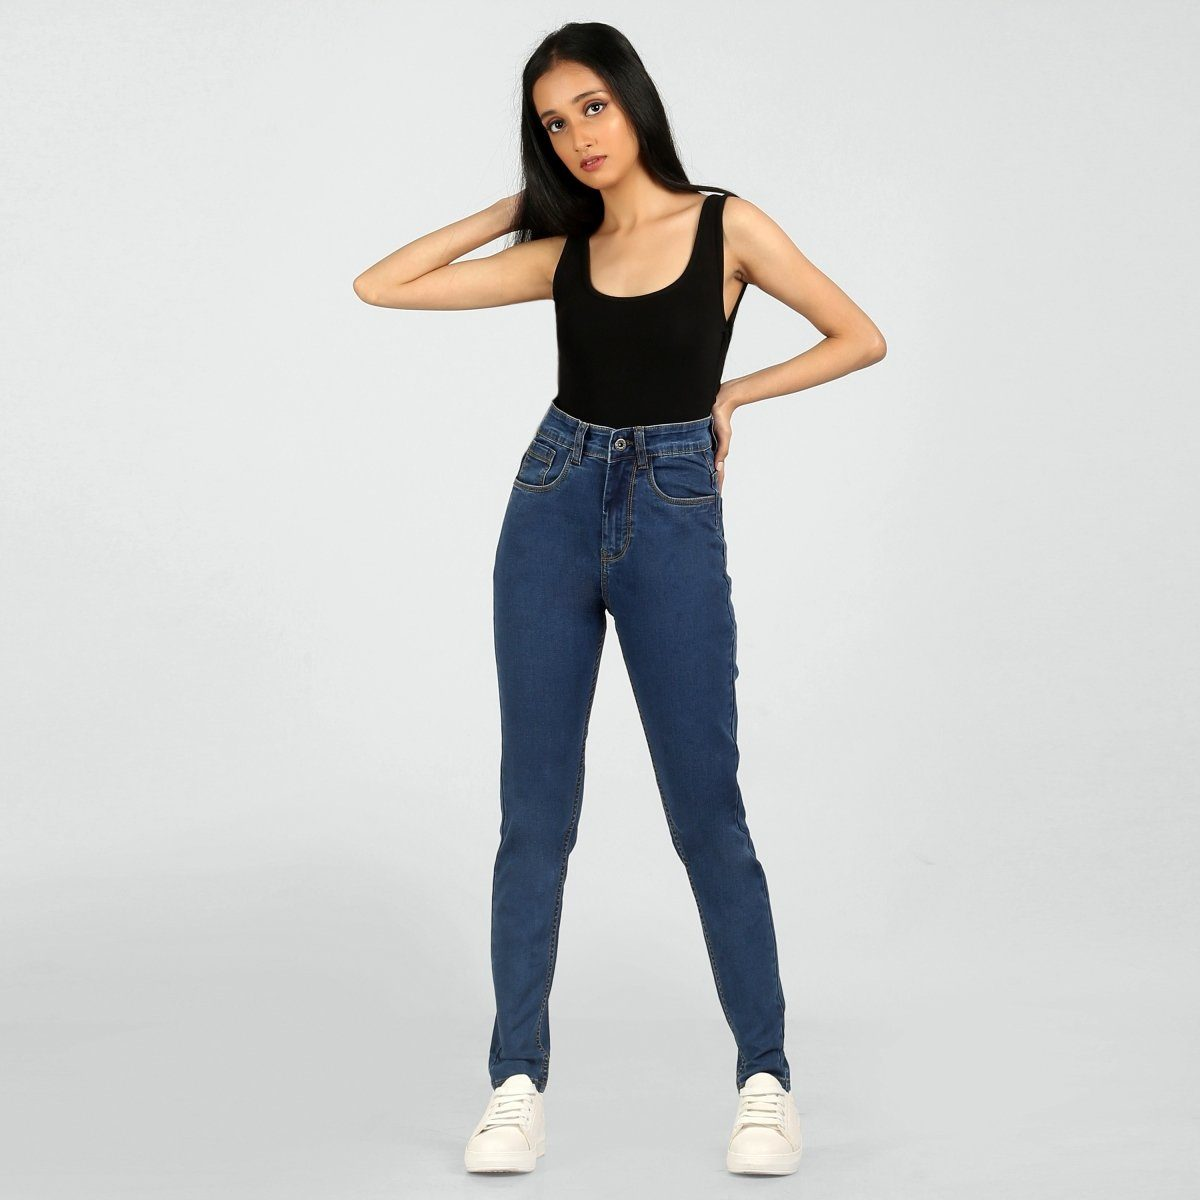 The 70s Slim Fit Classic Blue High Waist Jeans by Madish